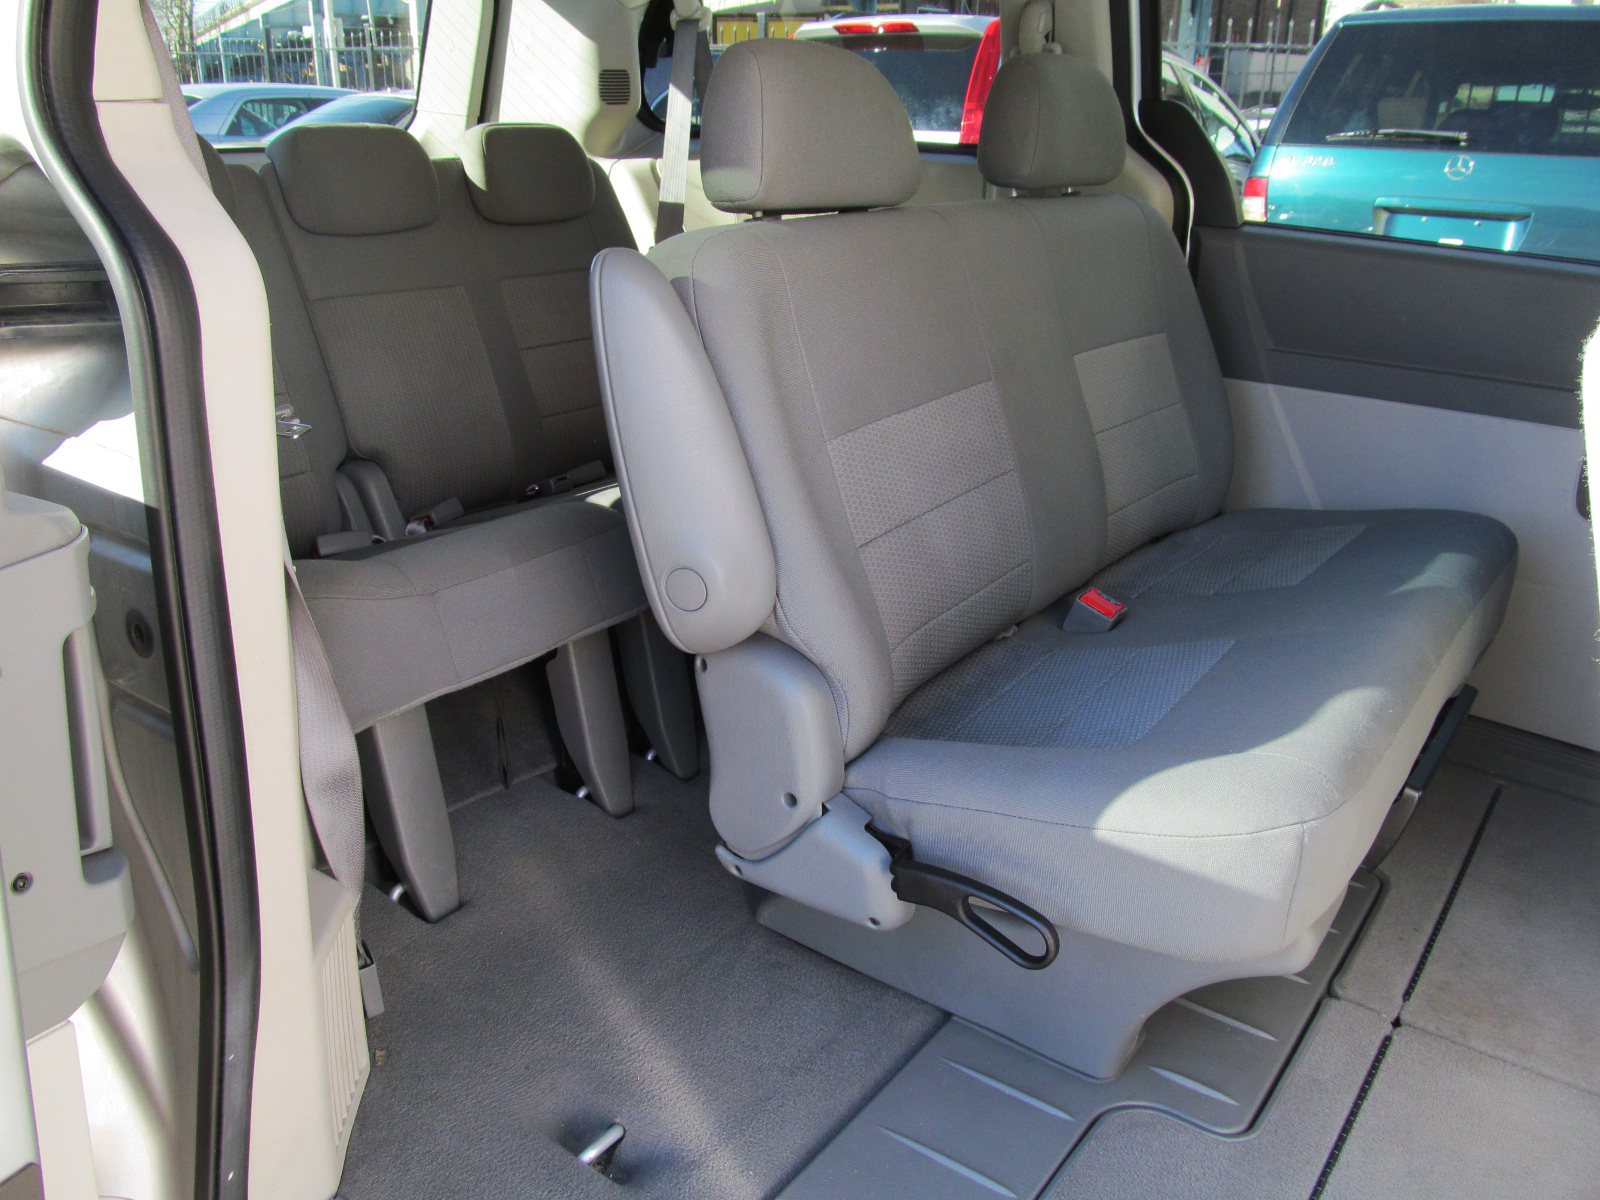 2008 Dodge Caravan Interior Great Home Inteiror